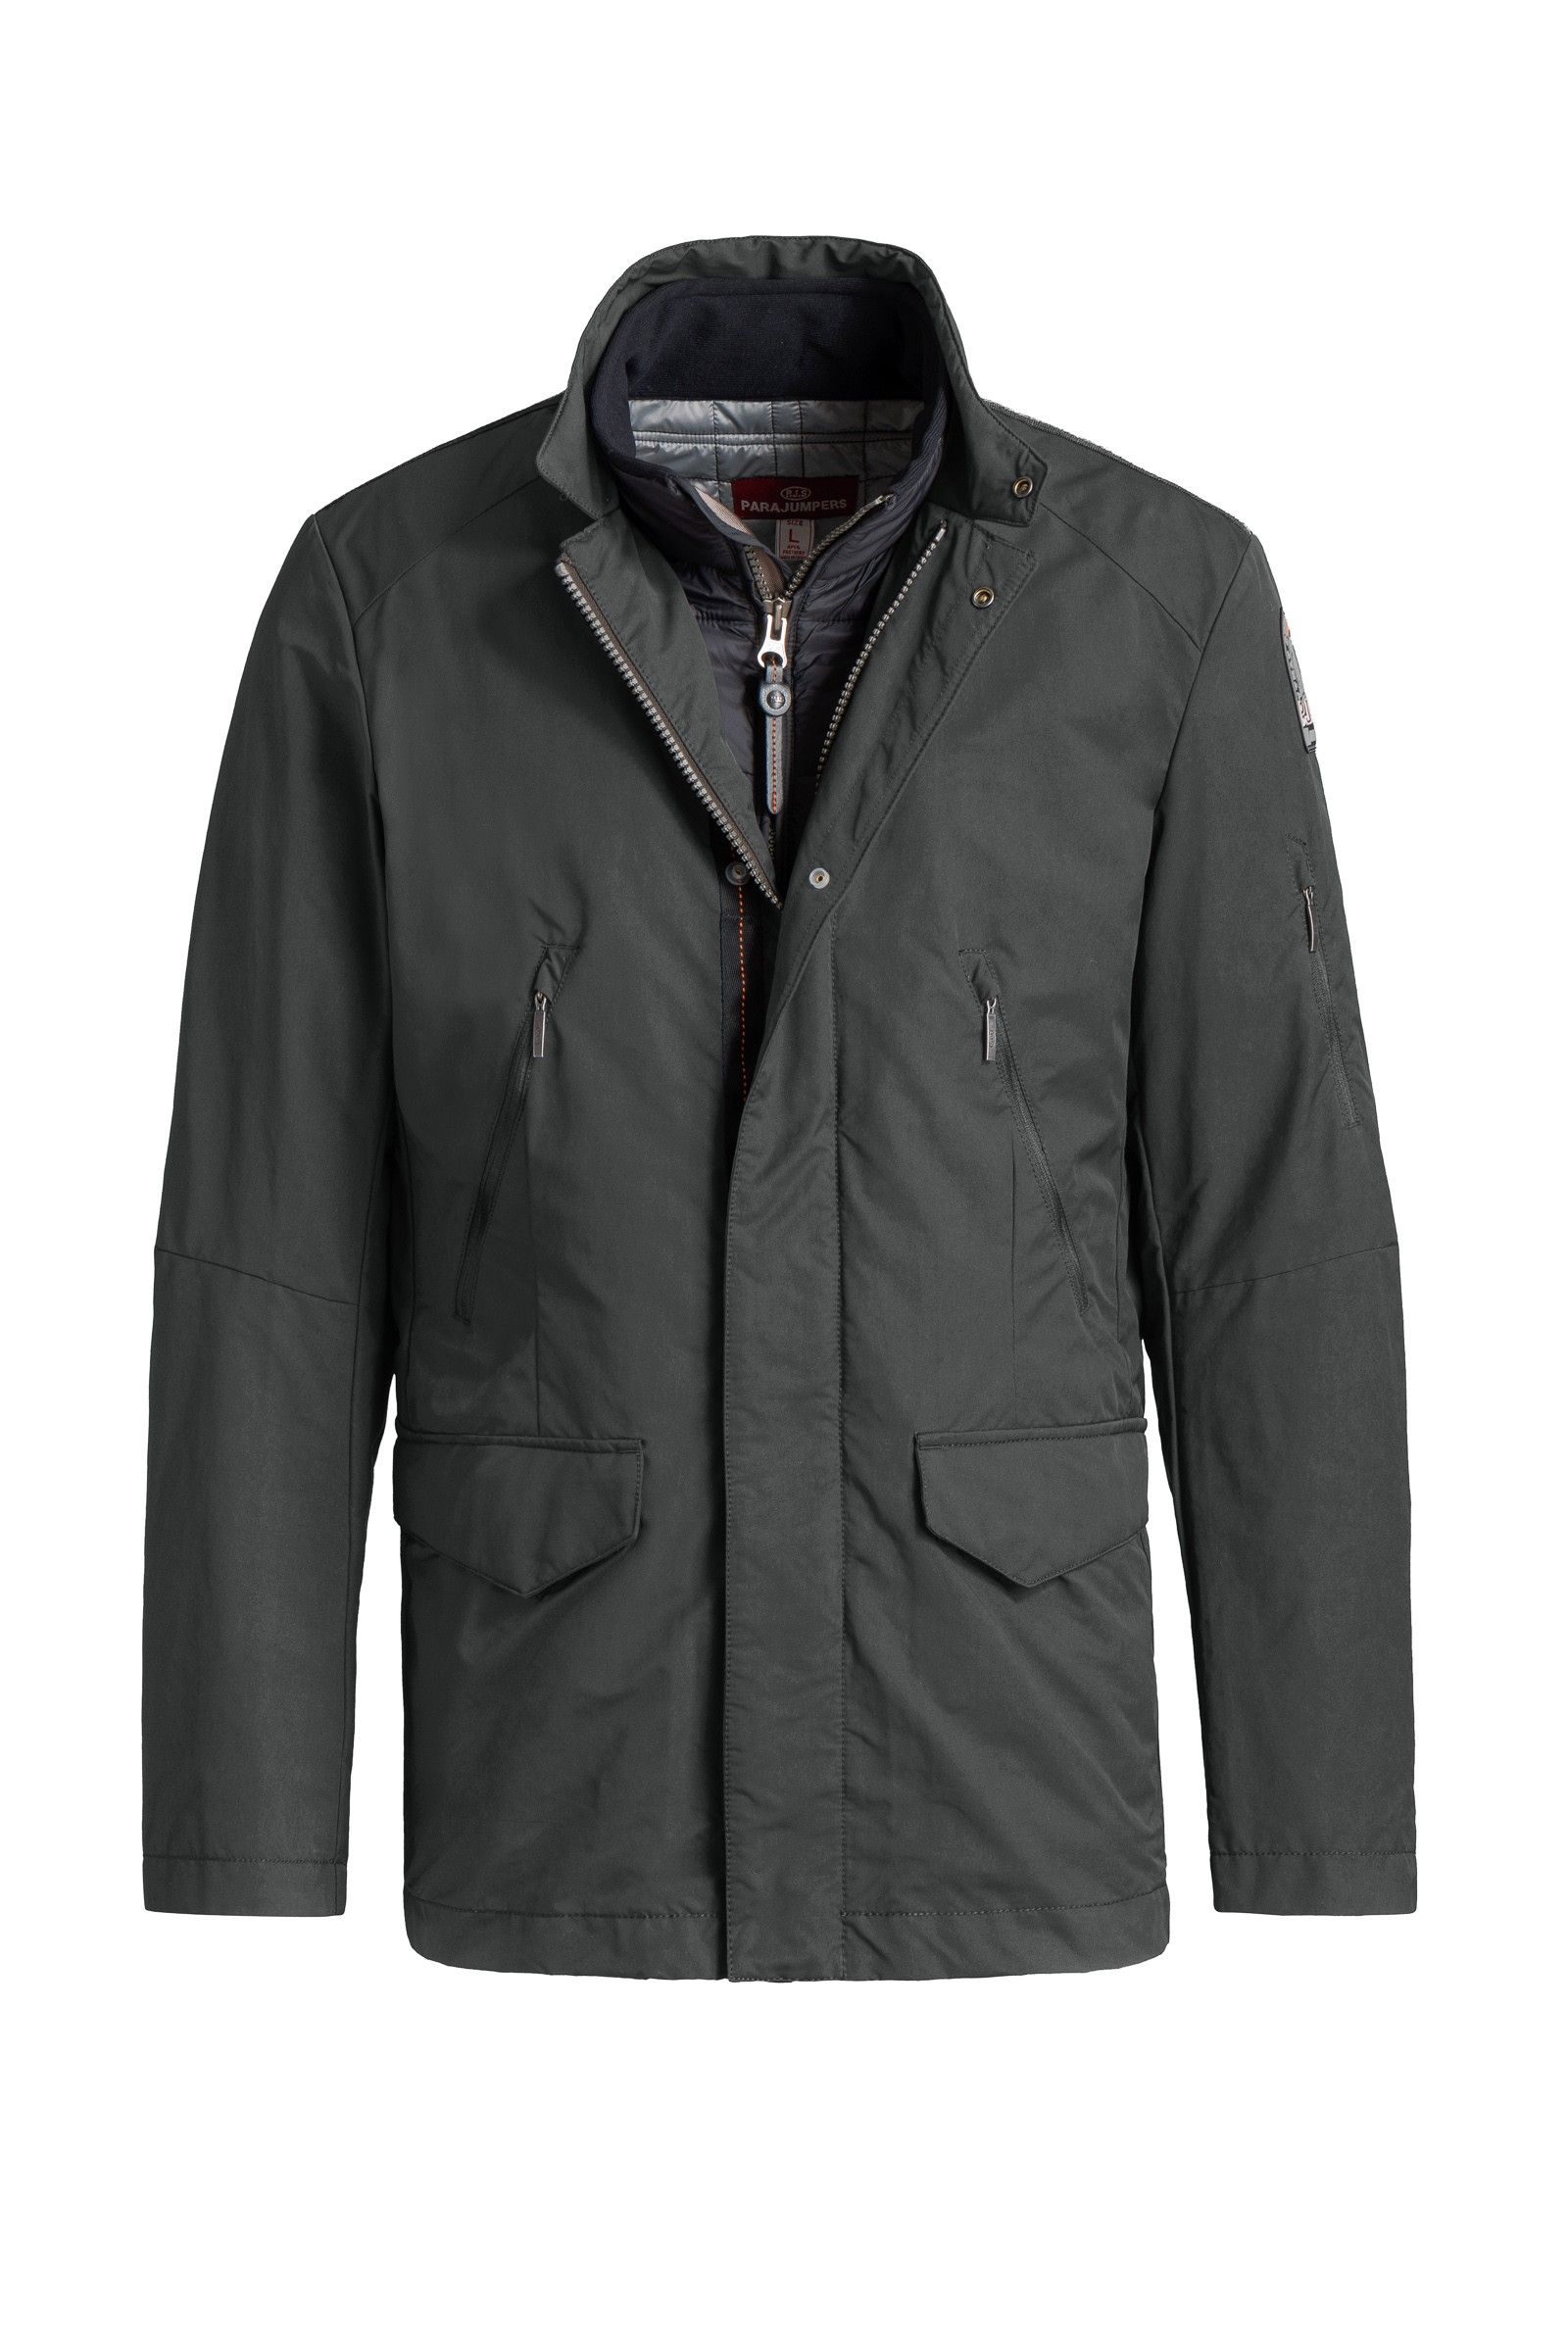 parajumpers field jacket